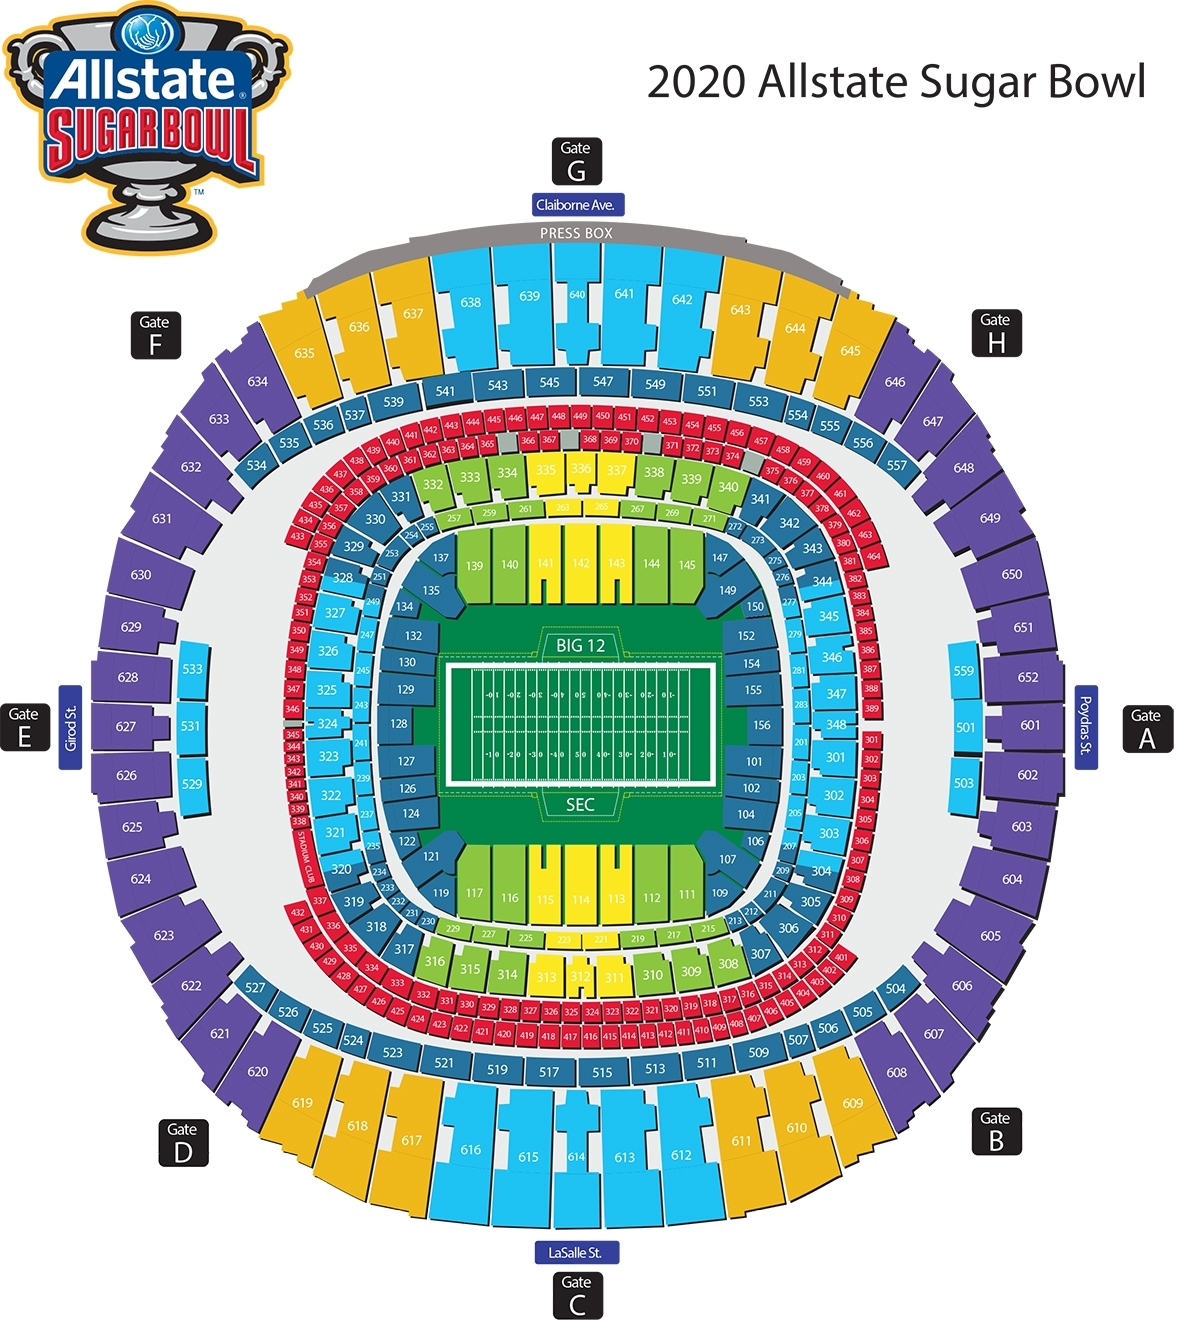 Seating Diagram - Official Site Of The Allstate Sugar Bowl with regard to Super Bowl 2019 Stadium Map